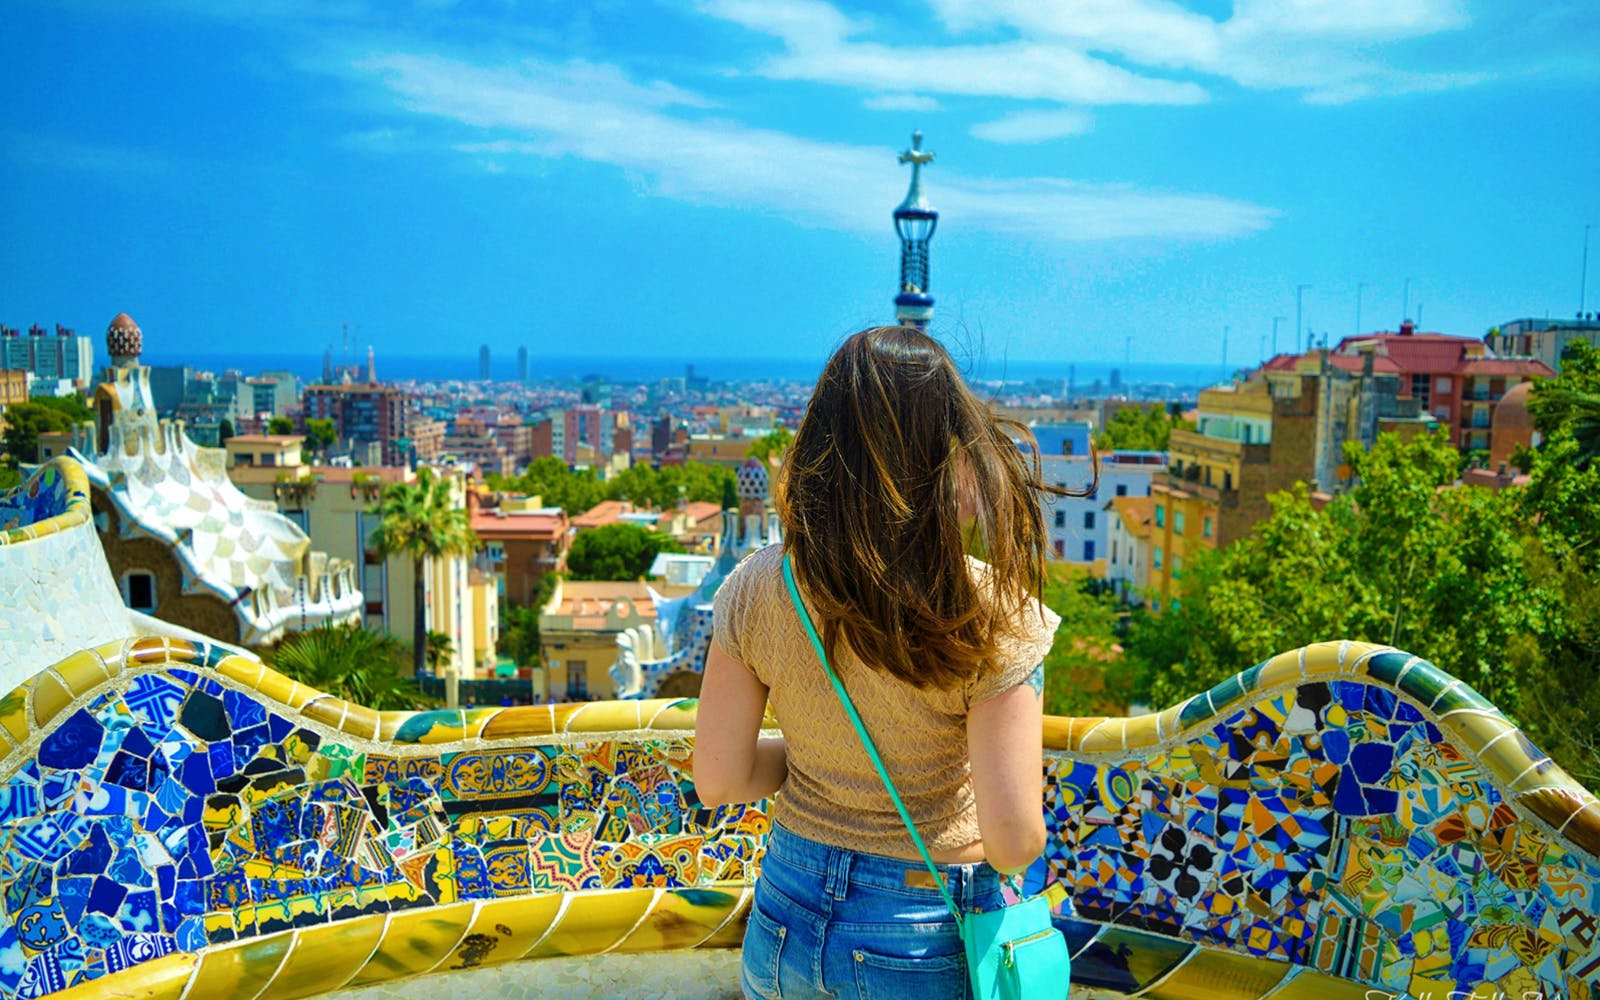 Artistic Barcelona - The Best of Gaudi Guided Tour